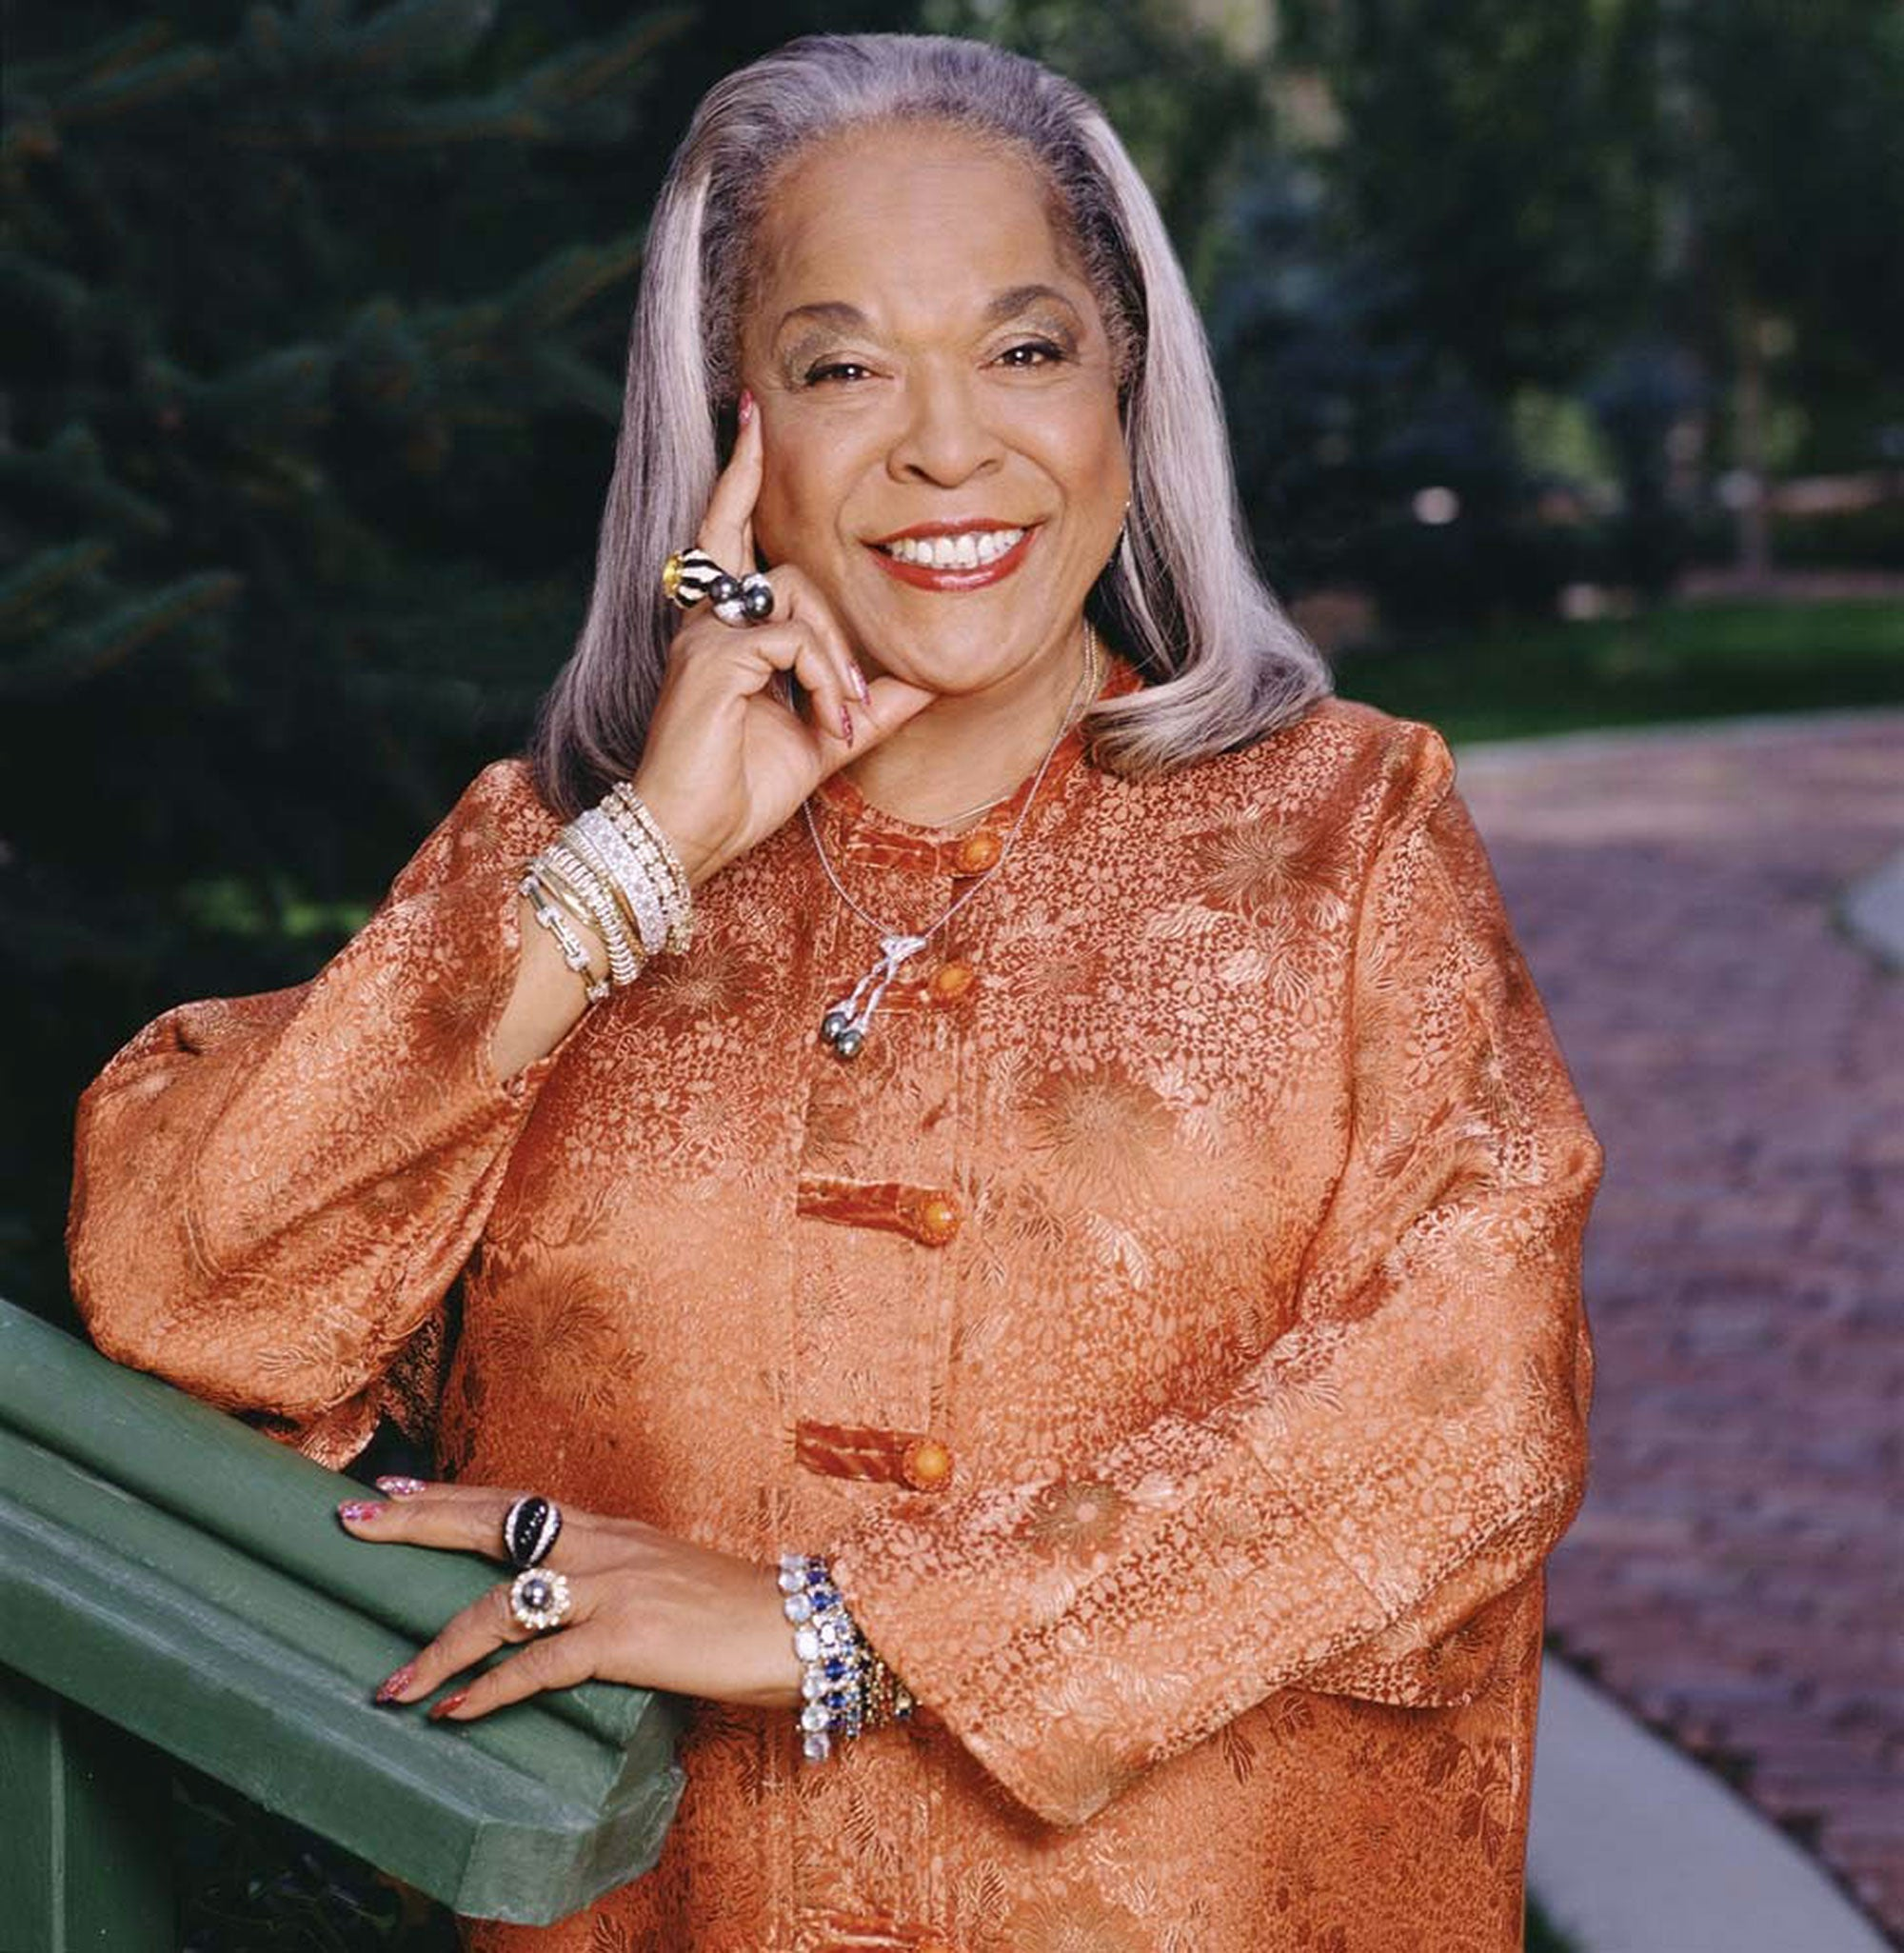 Della Reese, Music Legend And 'Touched By An Angel Star,' Dead at 86